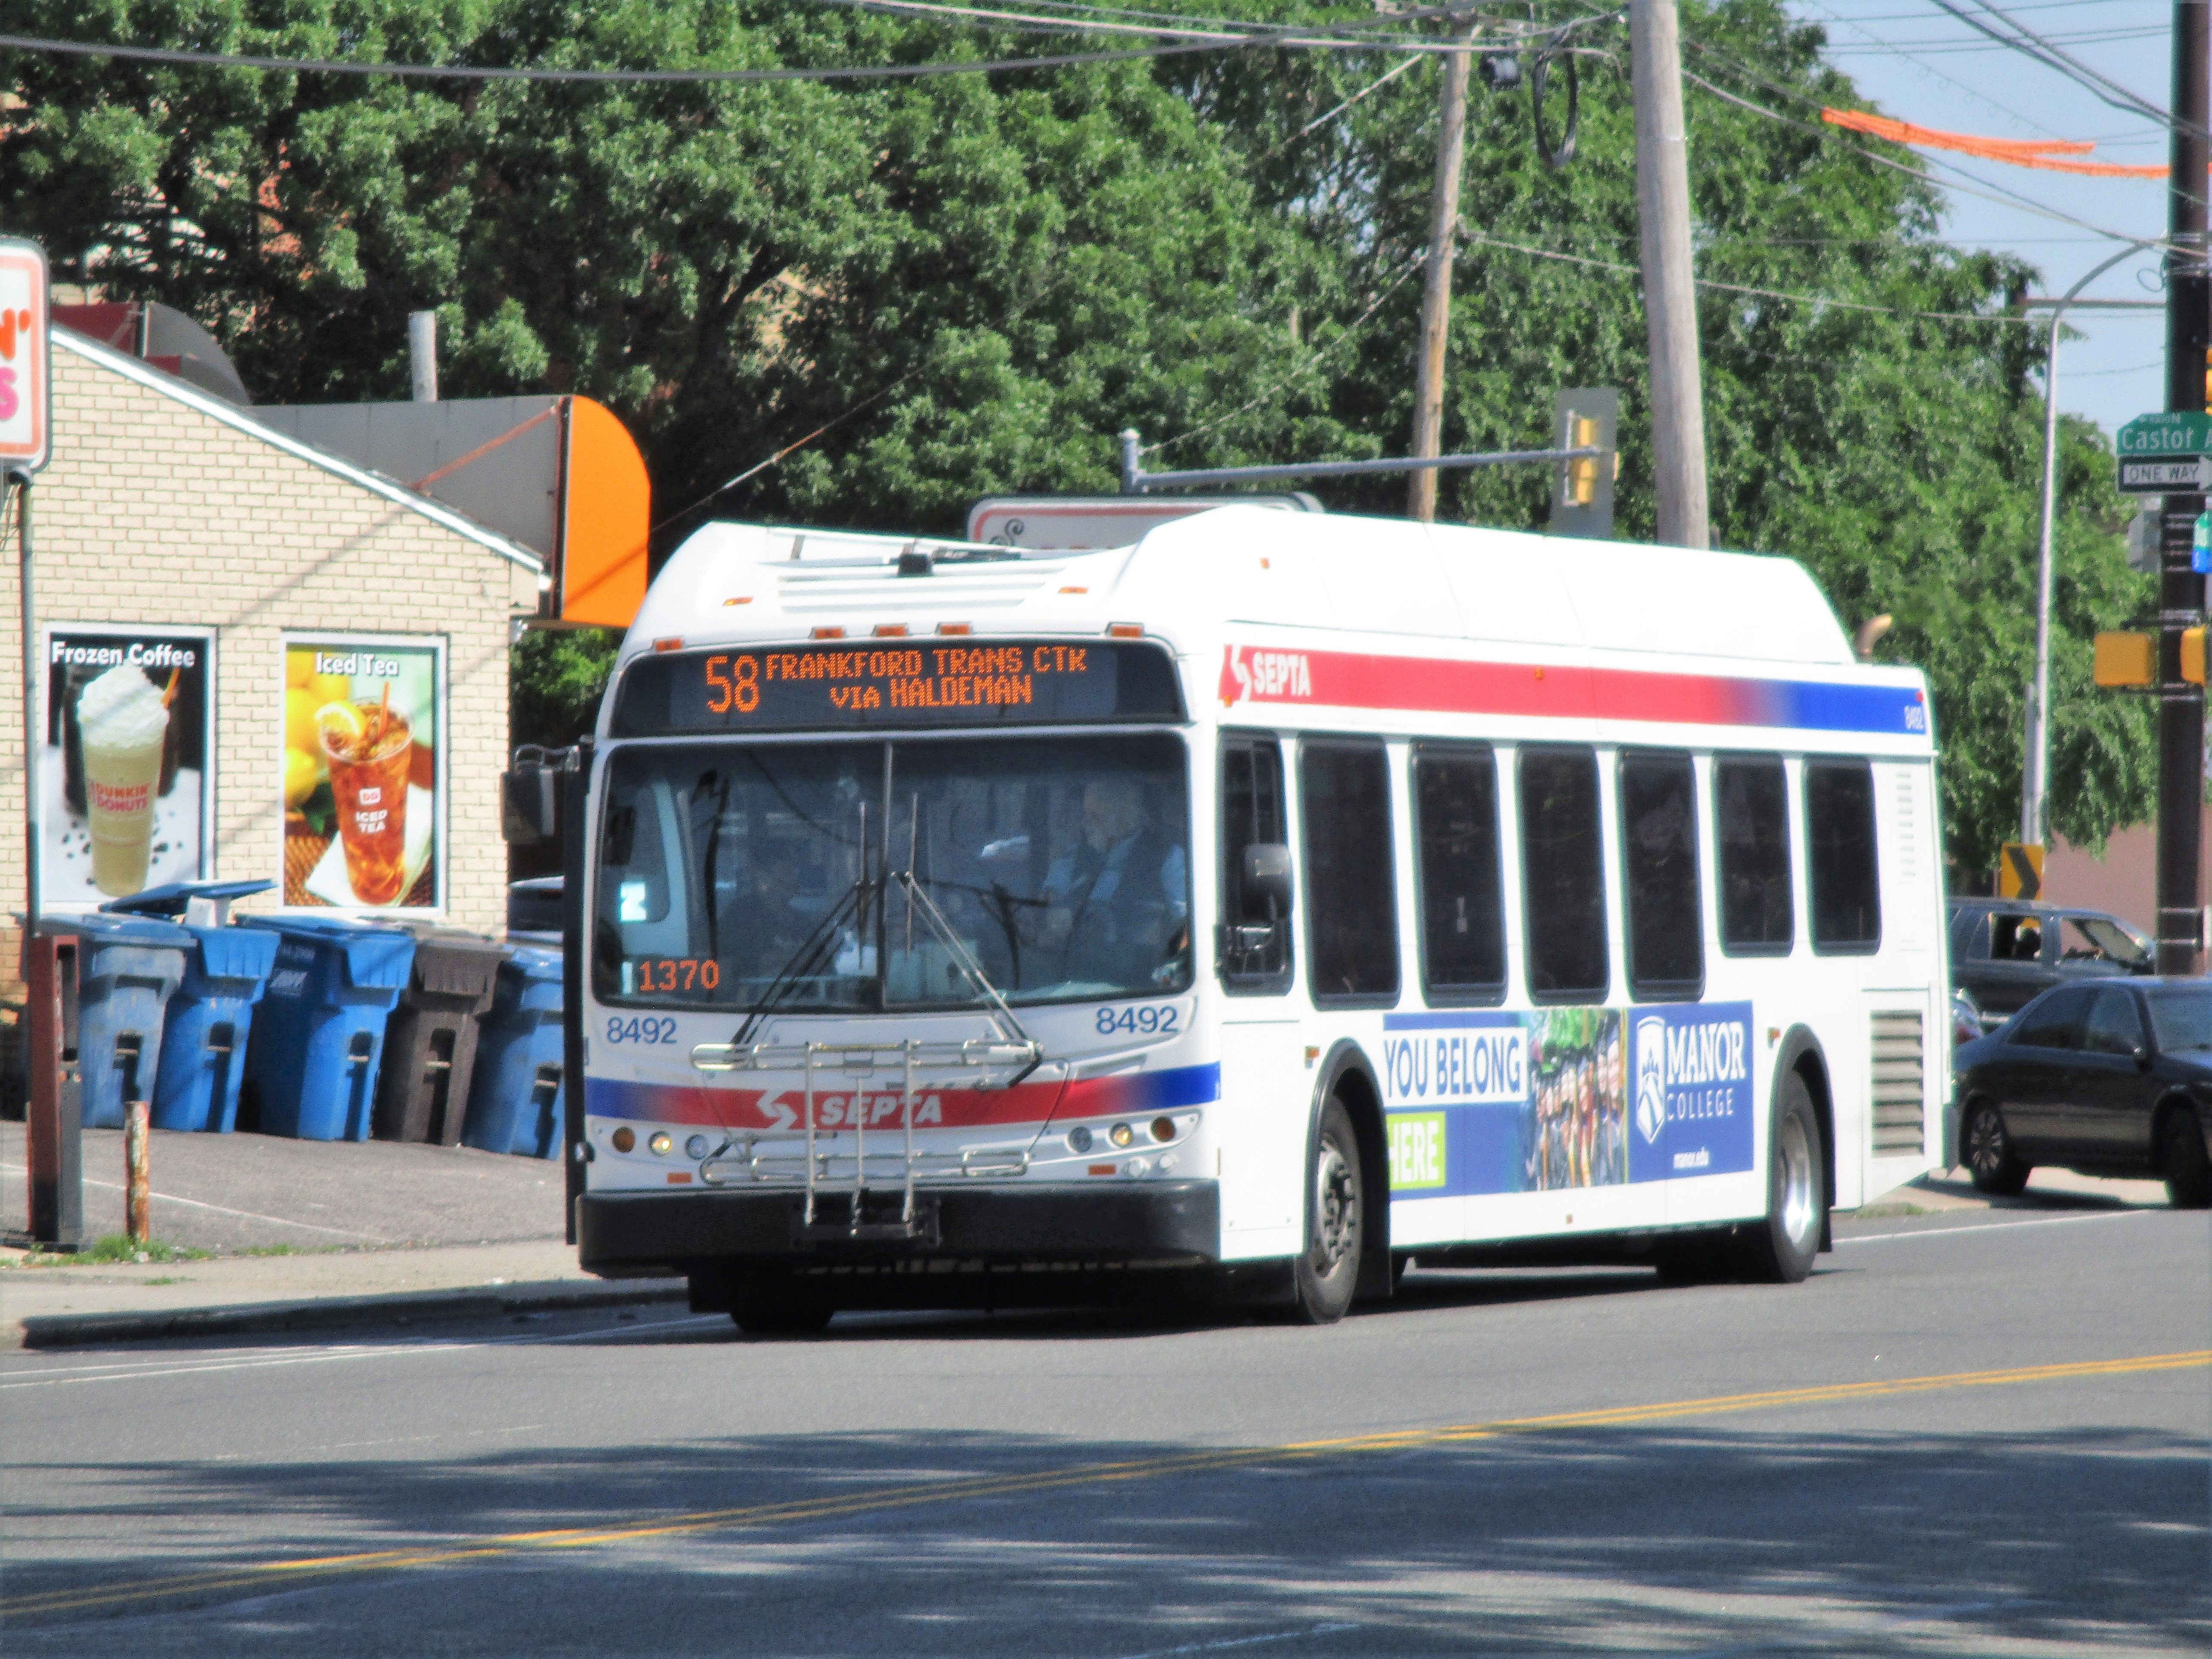 58 bus schedule septa sunday - the best bus